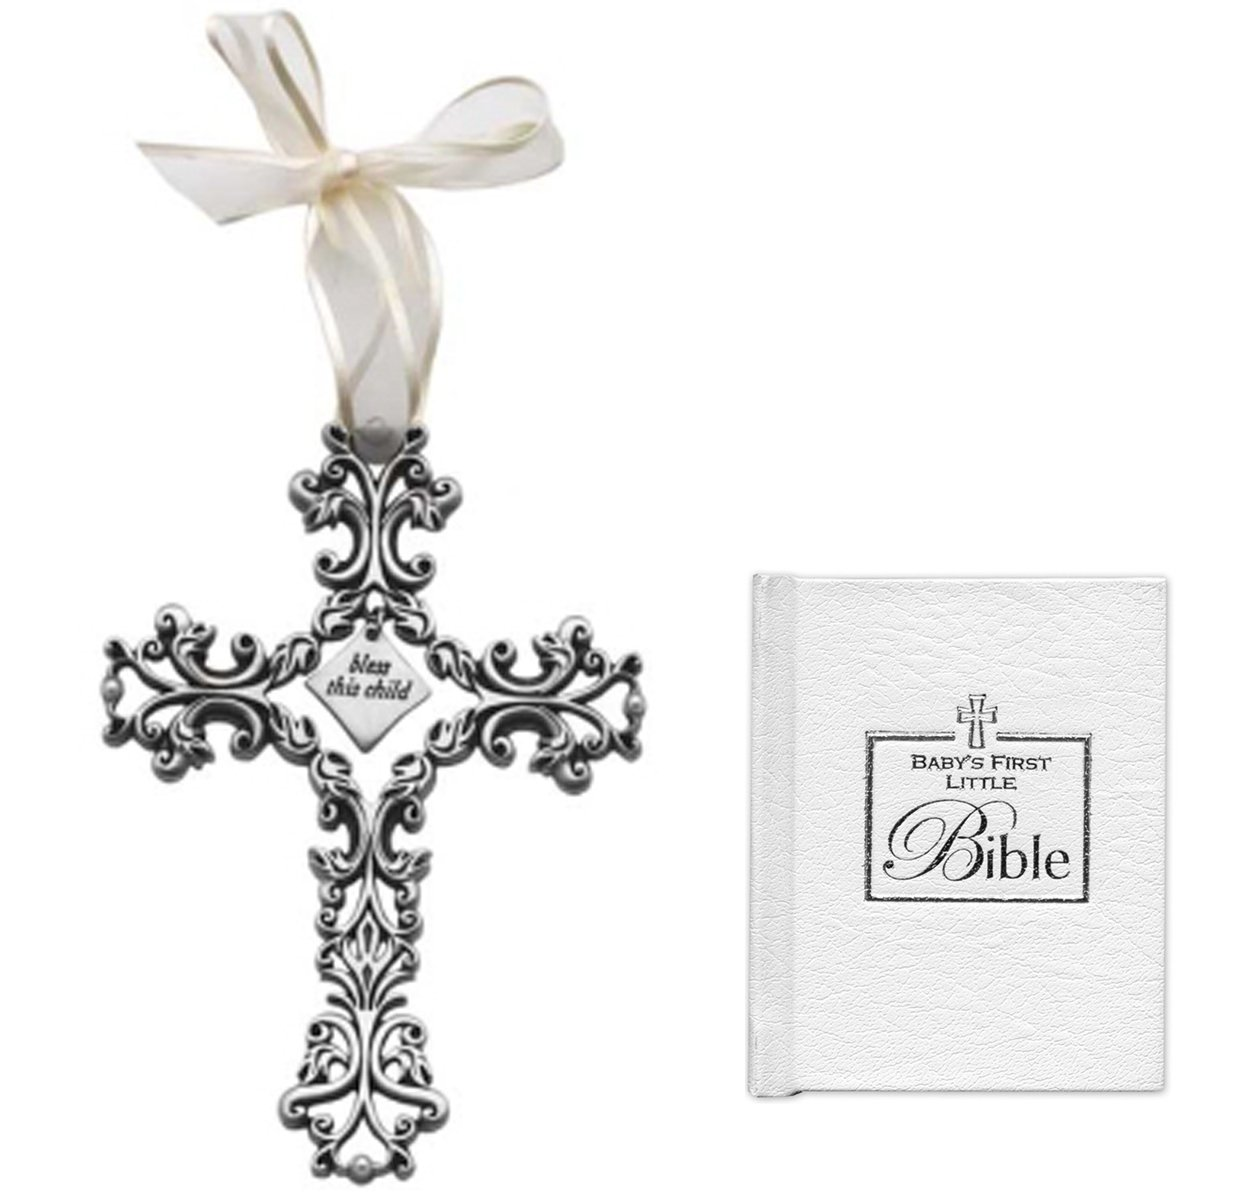 Mixed Christening Gifts For Boy or Girl Gift Set   Pewter Bless This Child Filagree Cross With White Ribbon and Babys First Bible Gender Neutral Baptism Gifts